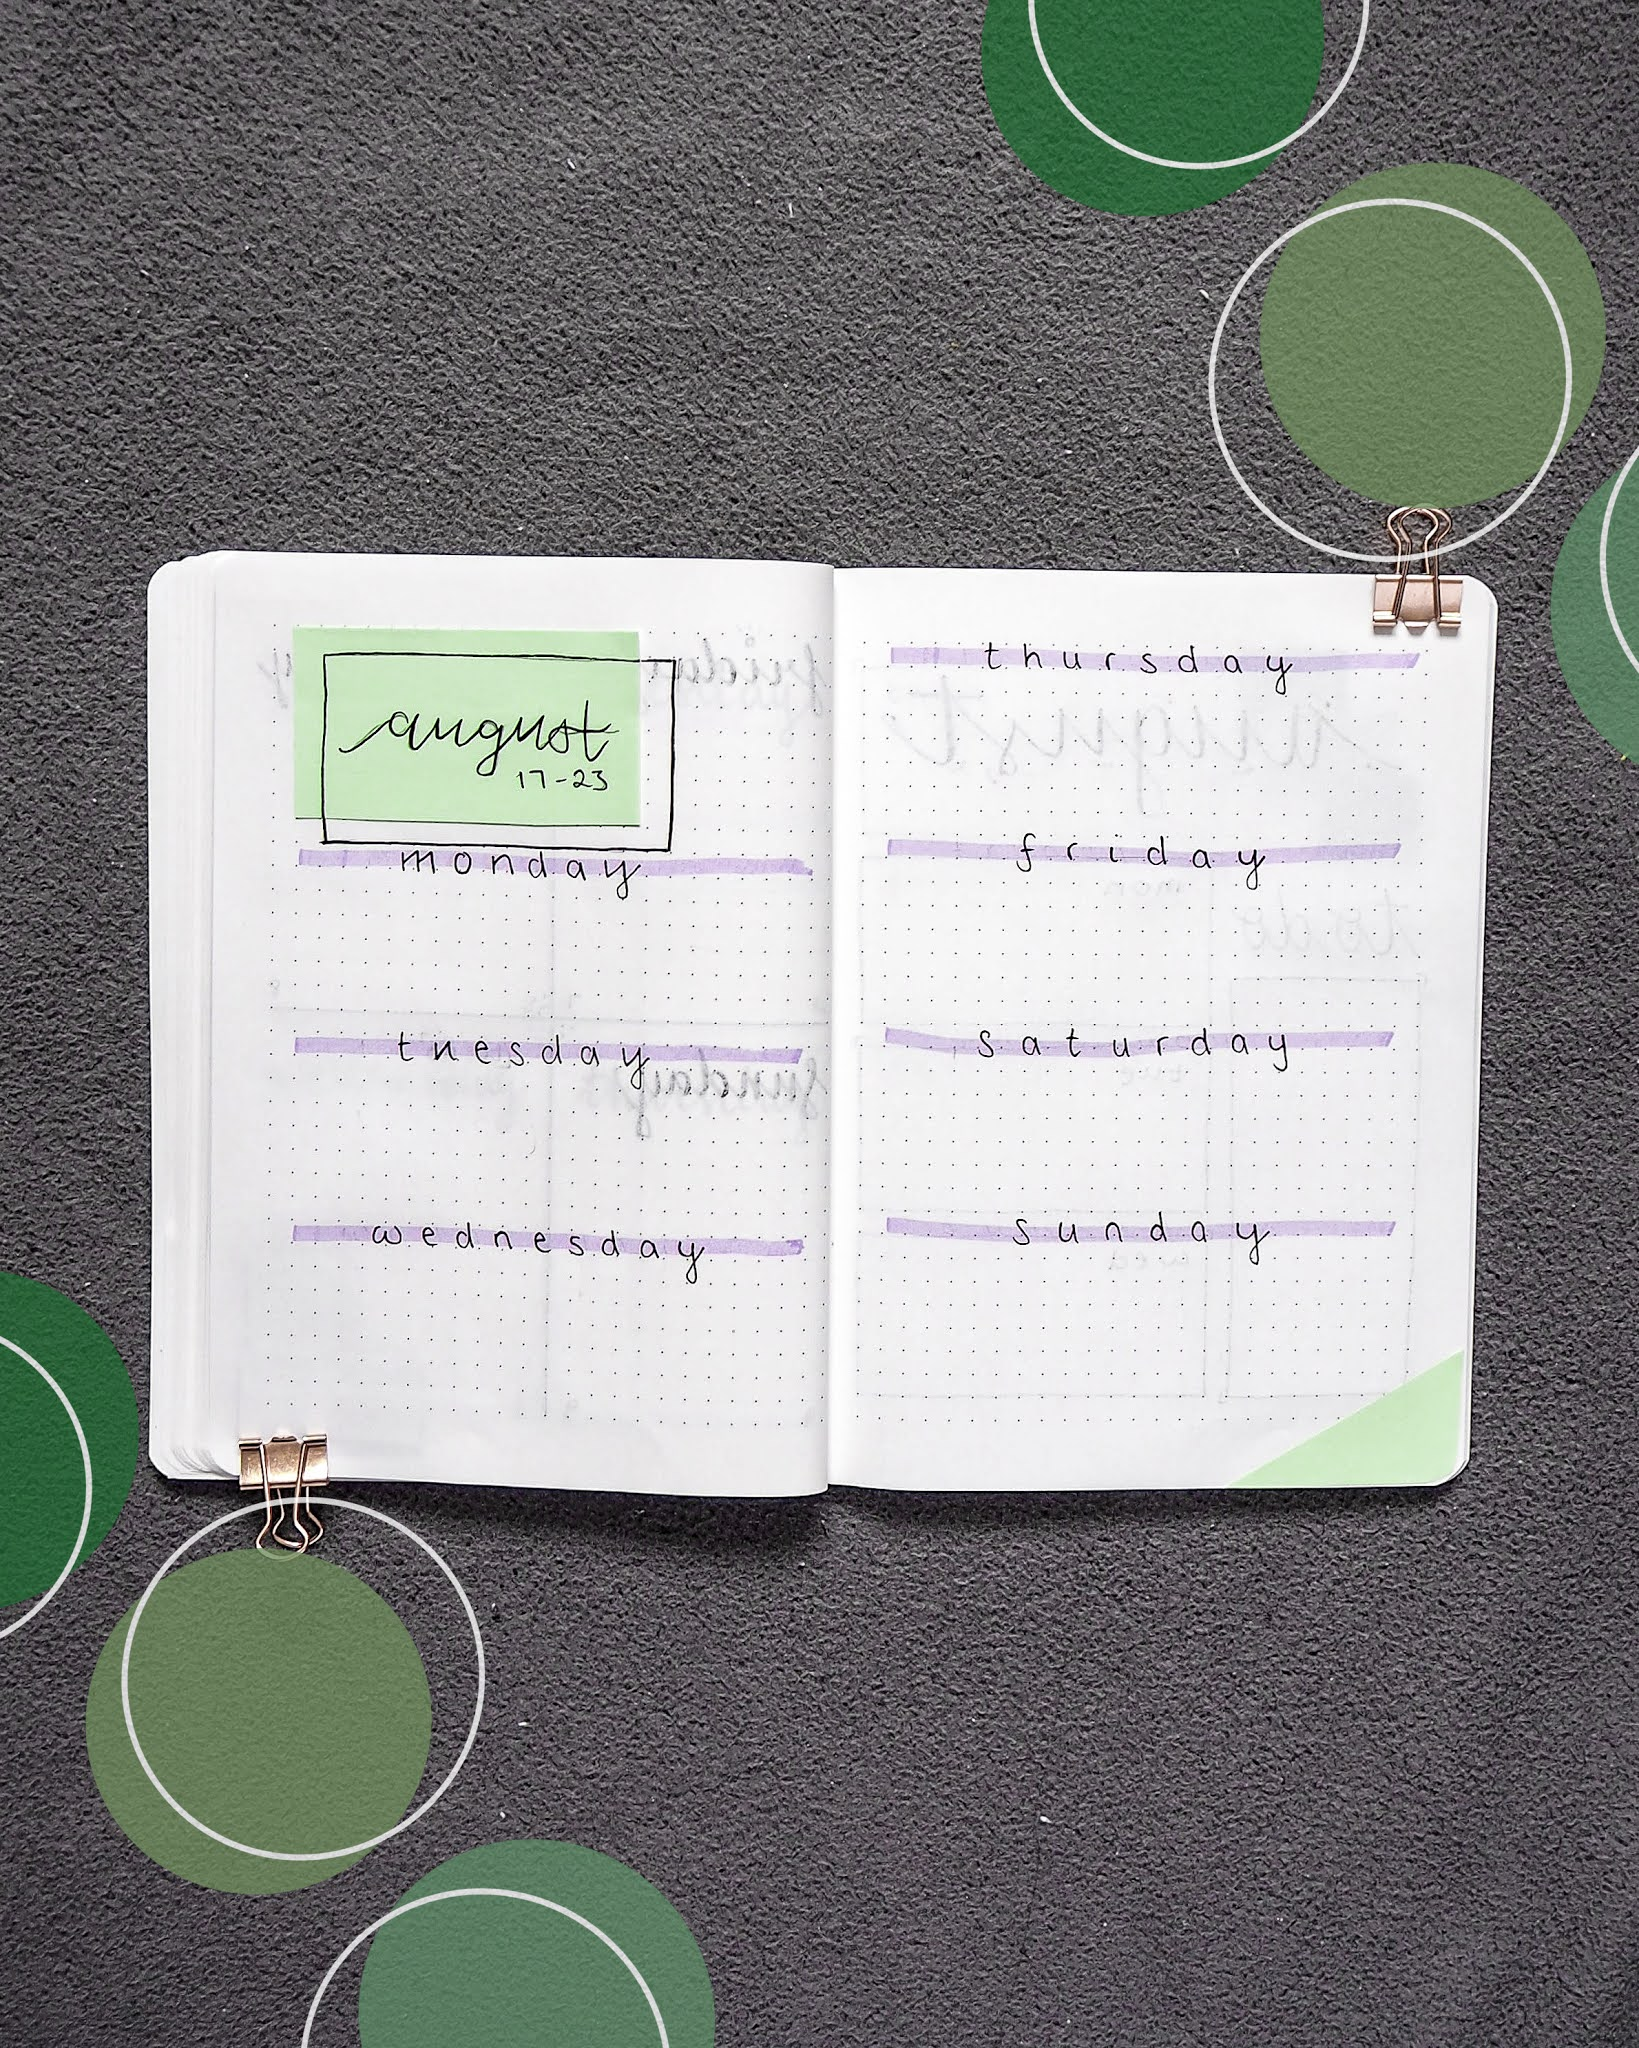 a green and purple themed bullet journal weekly spread. at the top of the first page is the month and days for the week (ie. 17-23). the rest of the two pages are split up into days with the divides going horizontal